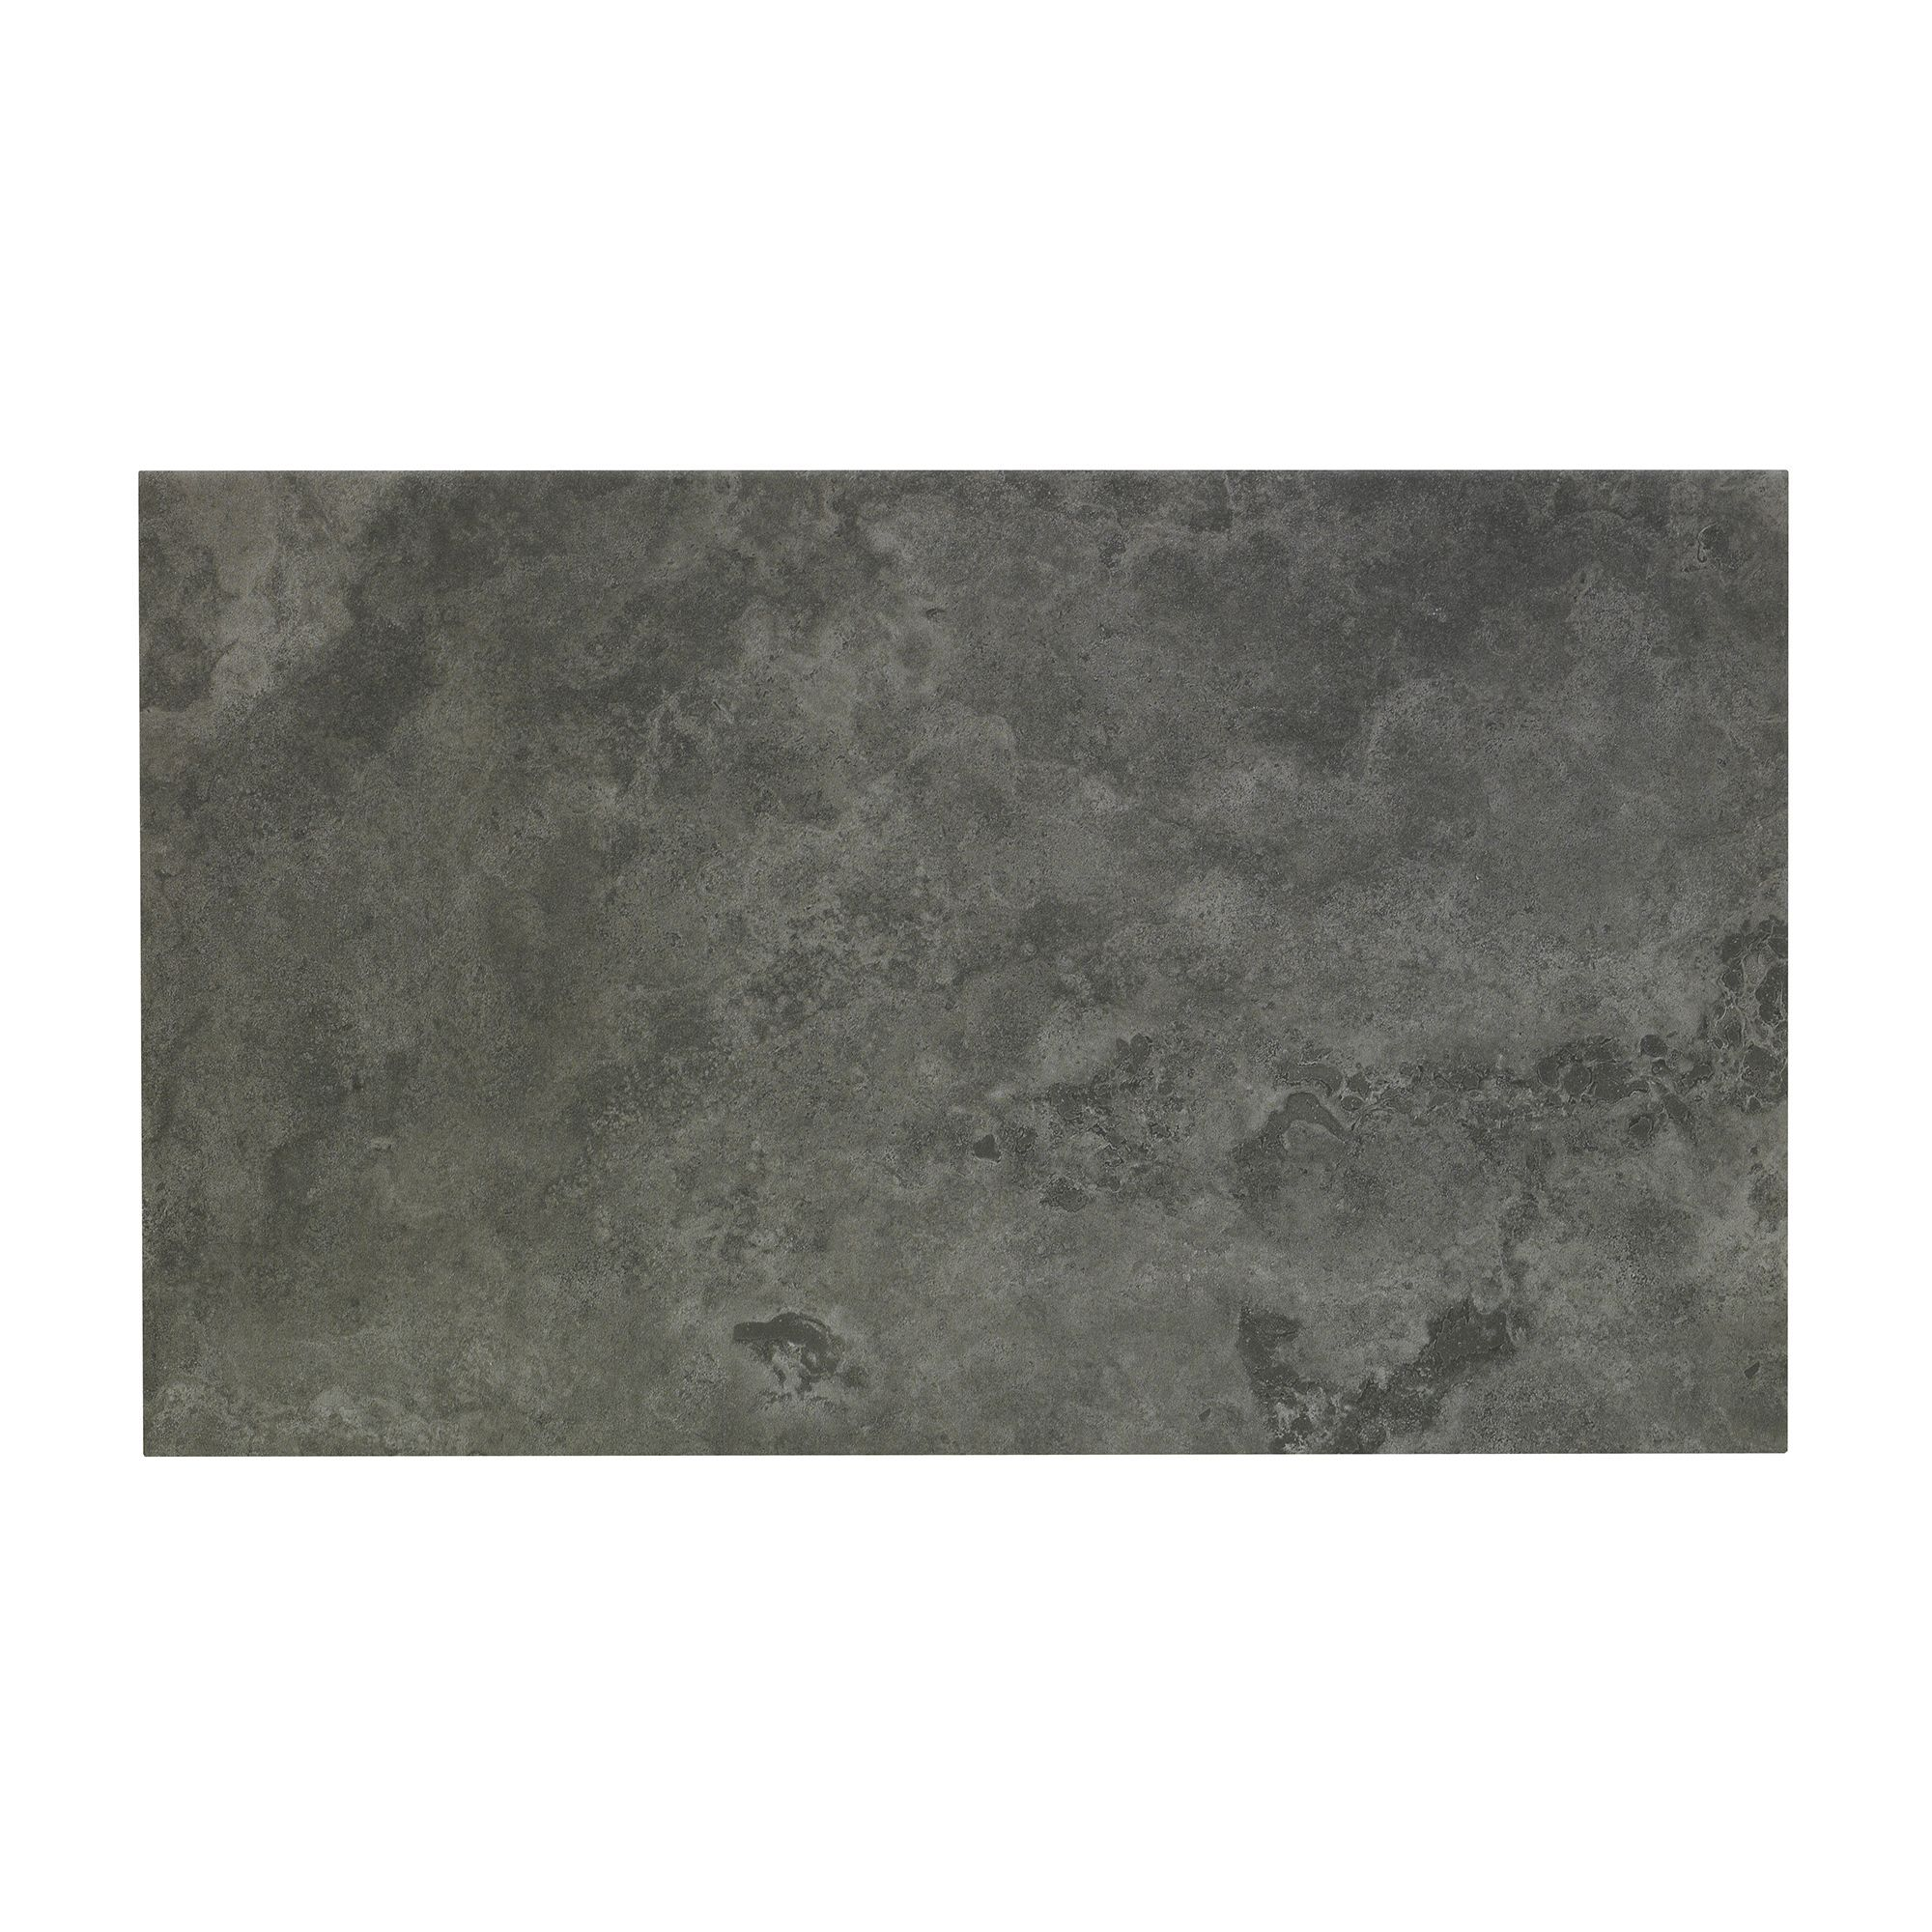 Oscano graphite stone effect ceramic wall floor tile pack of 6 oscano graphite stone effect stone effect ceramic wall floor tile pack of bq for all your home and garden supplies and advice on all the latest diy doublecrazyfo Images